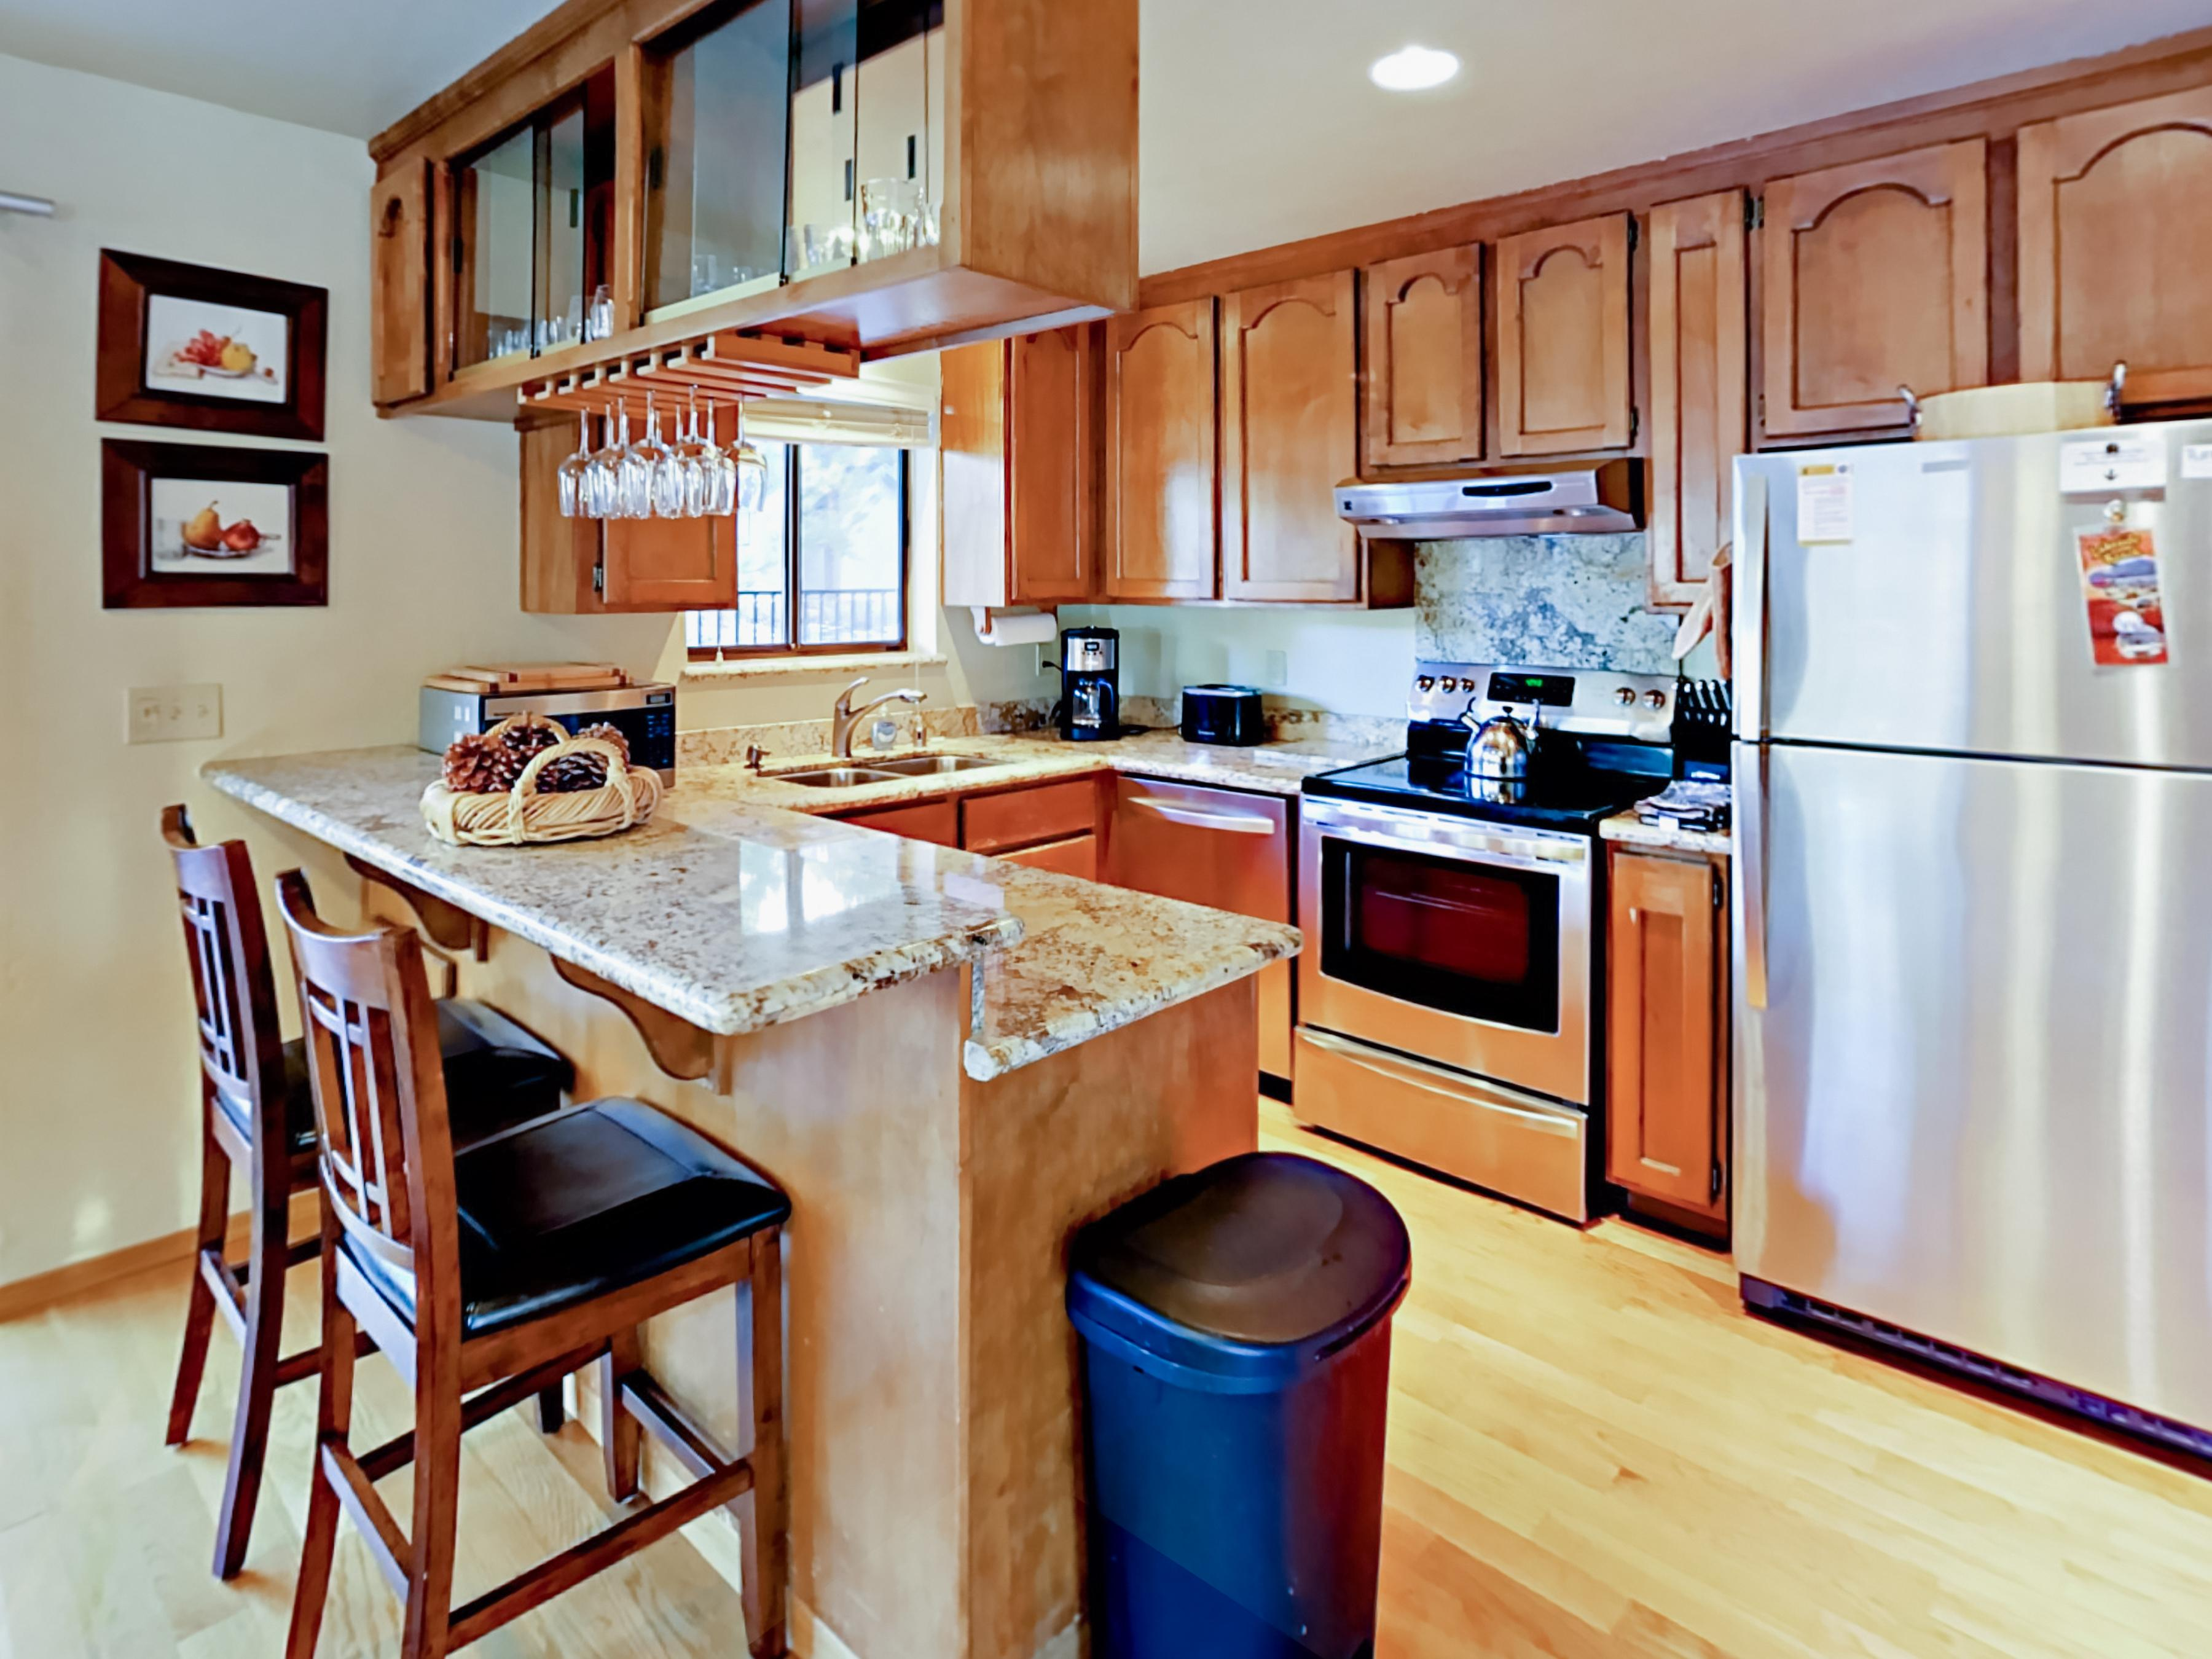 Granite countertops and stainless steel appliances shine in the upstairs kitchen.